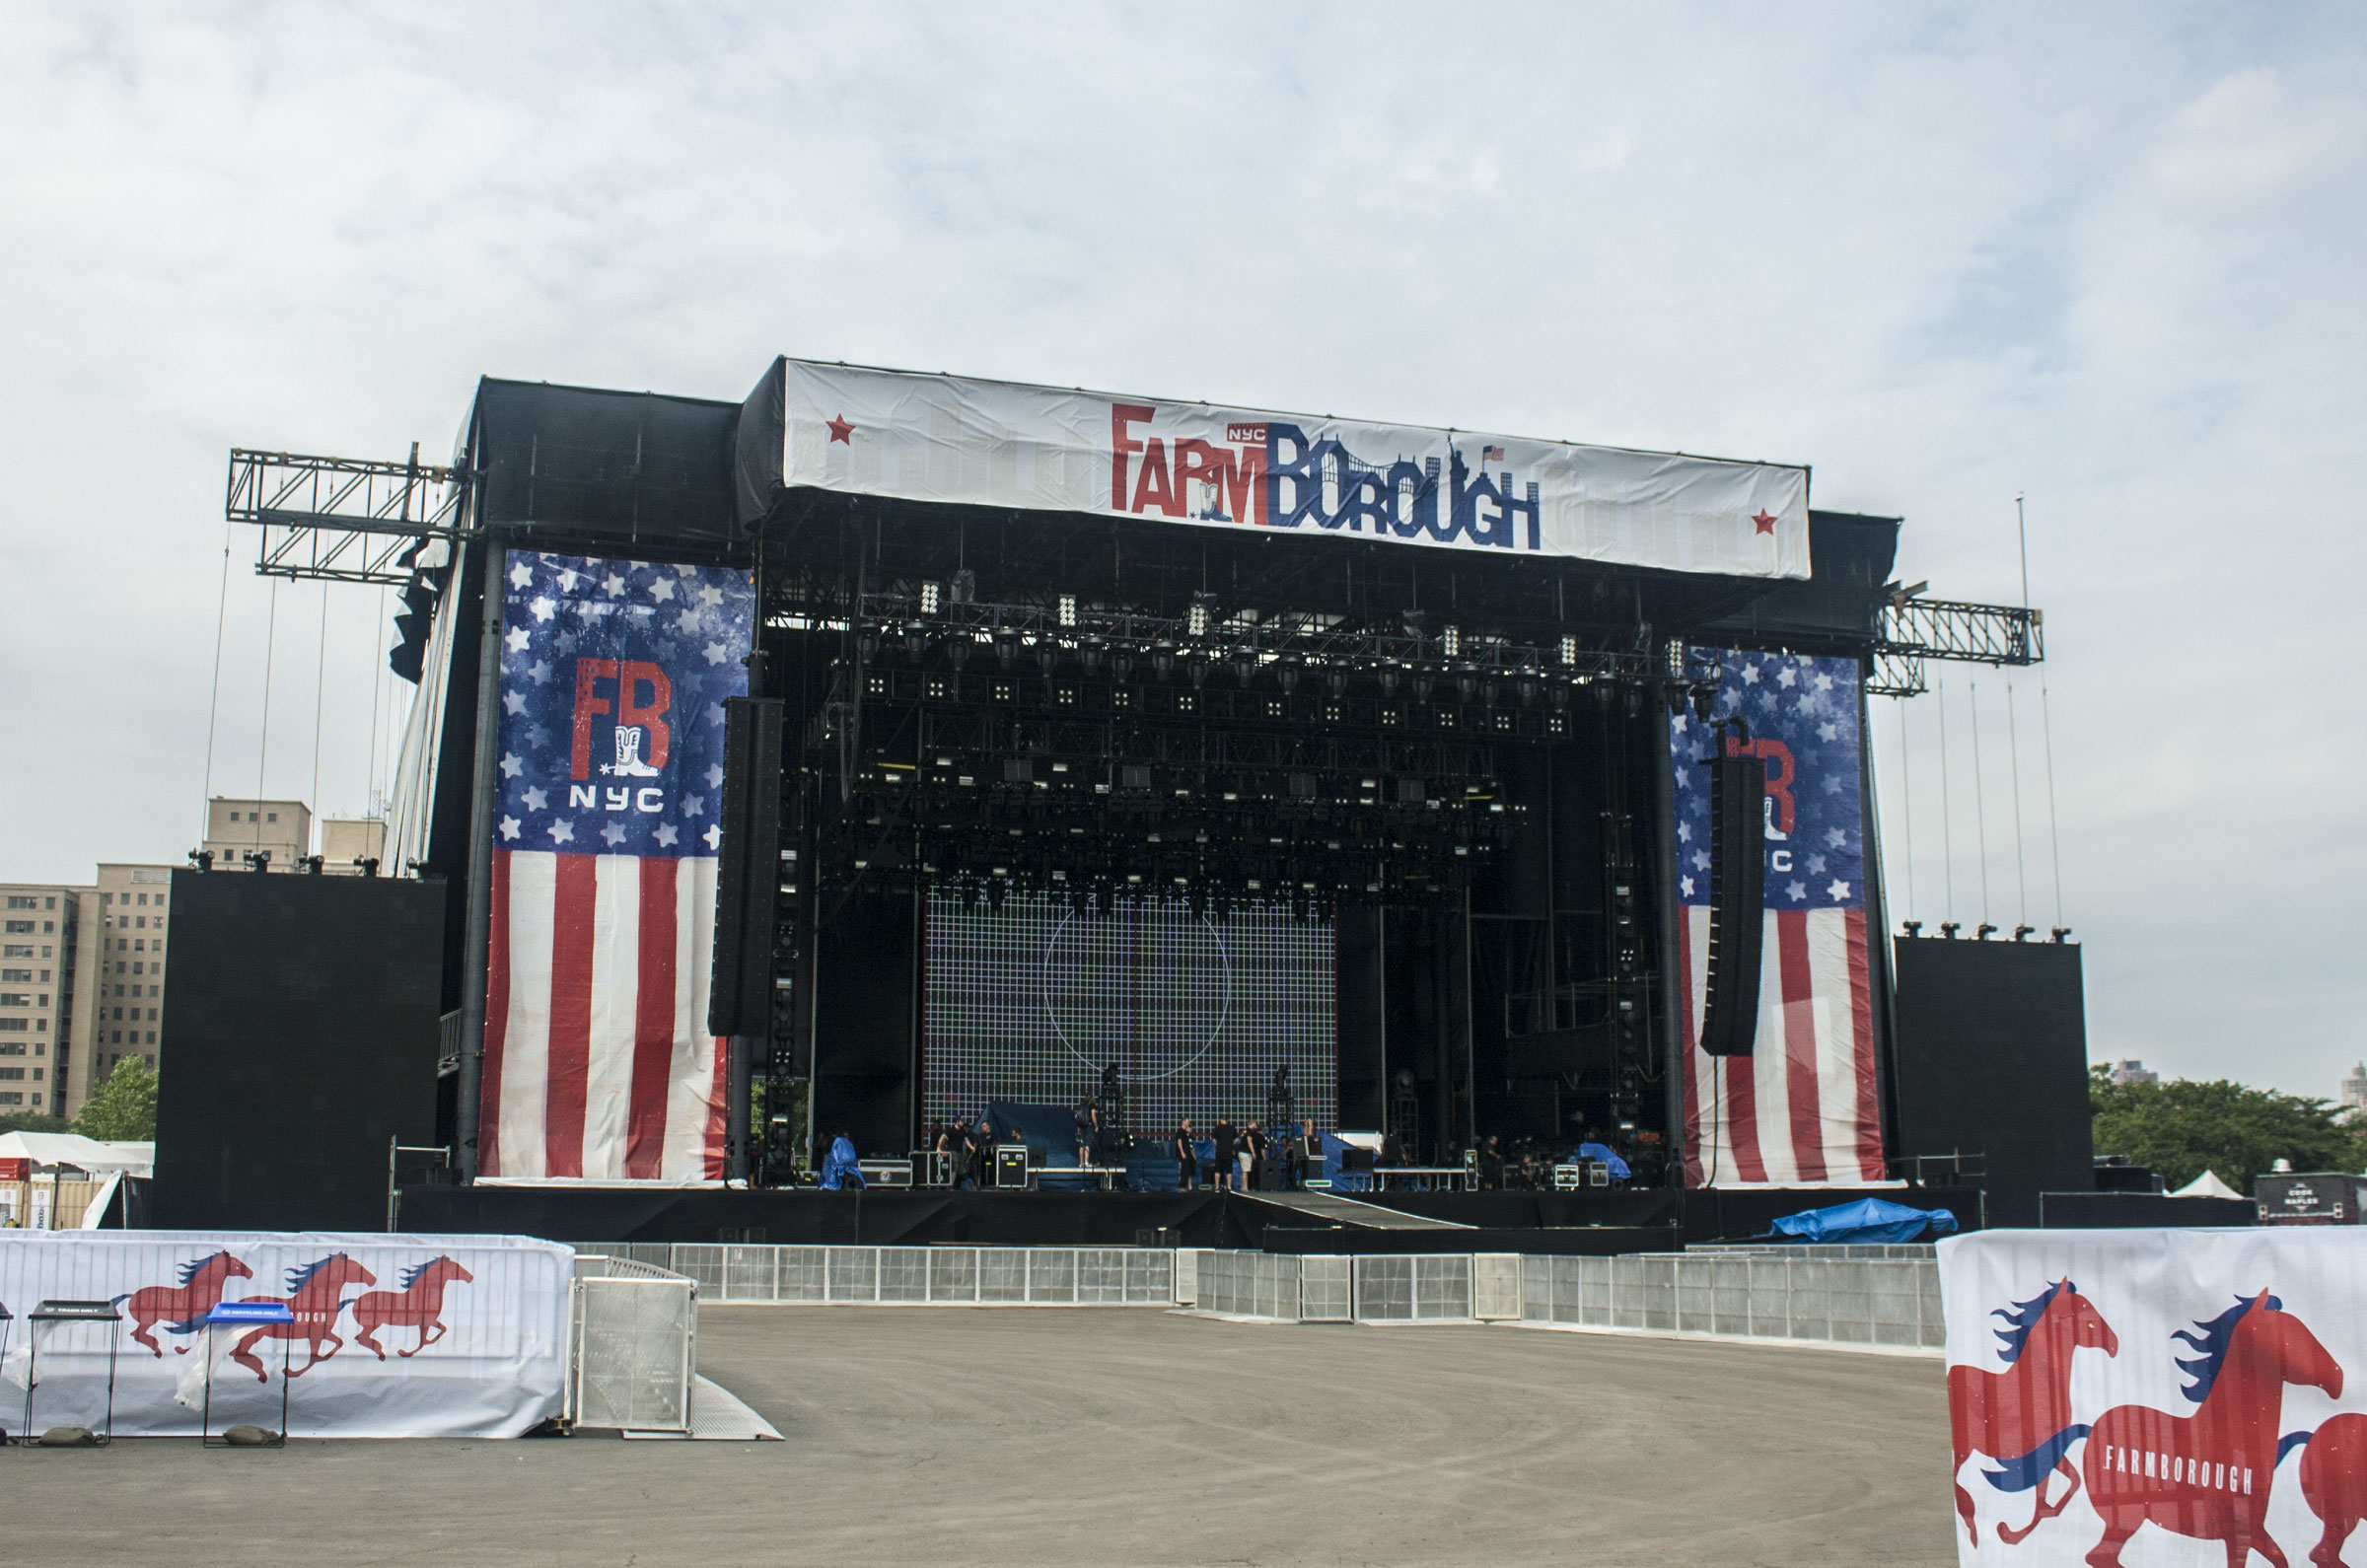 Main Stage with branded softgoods hung